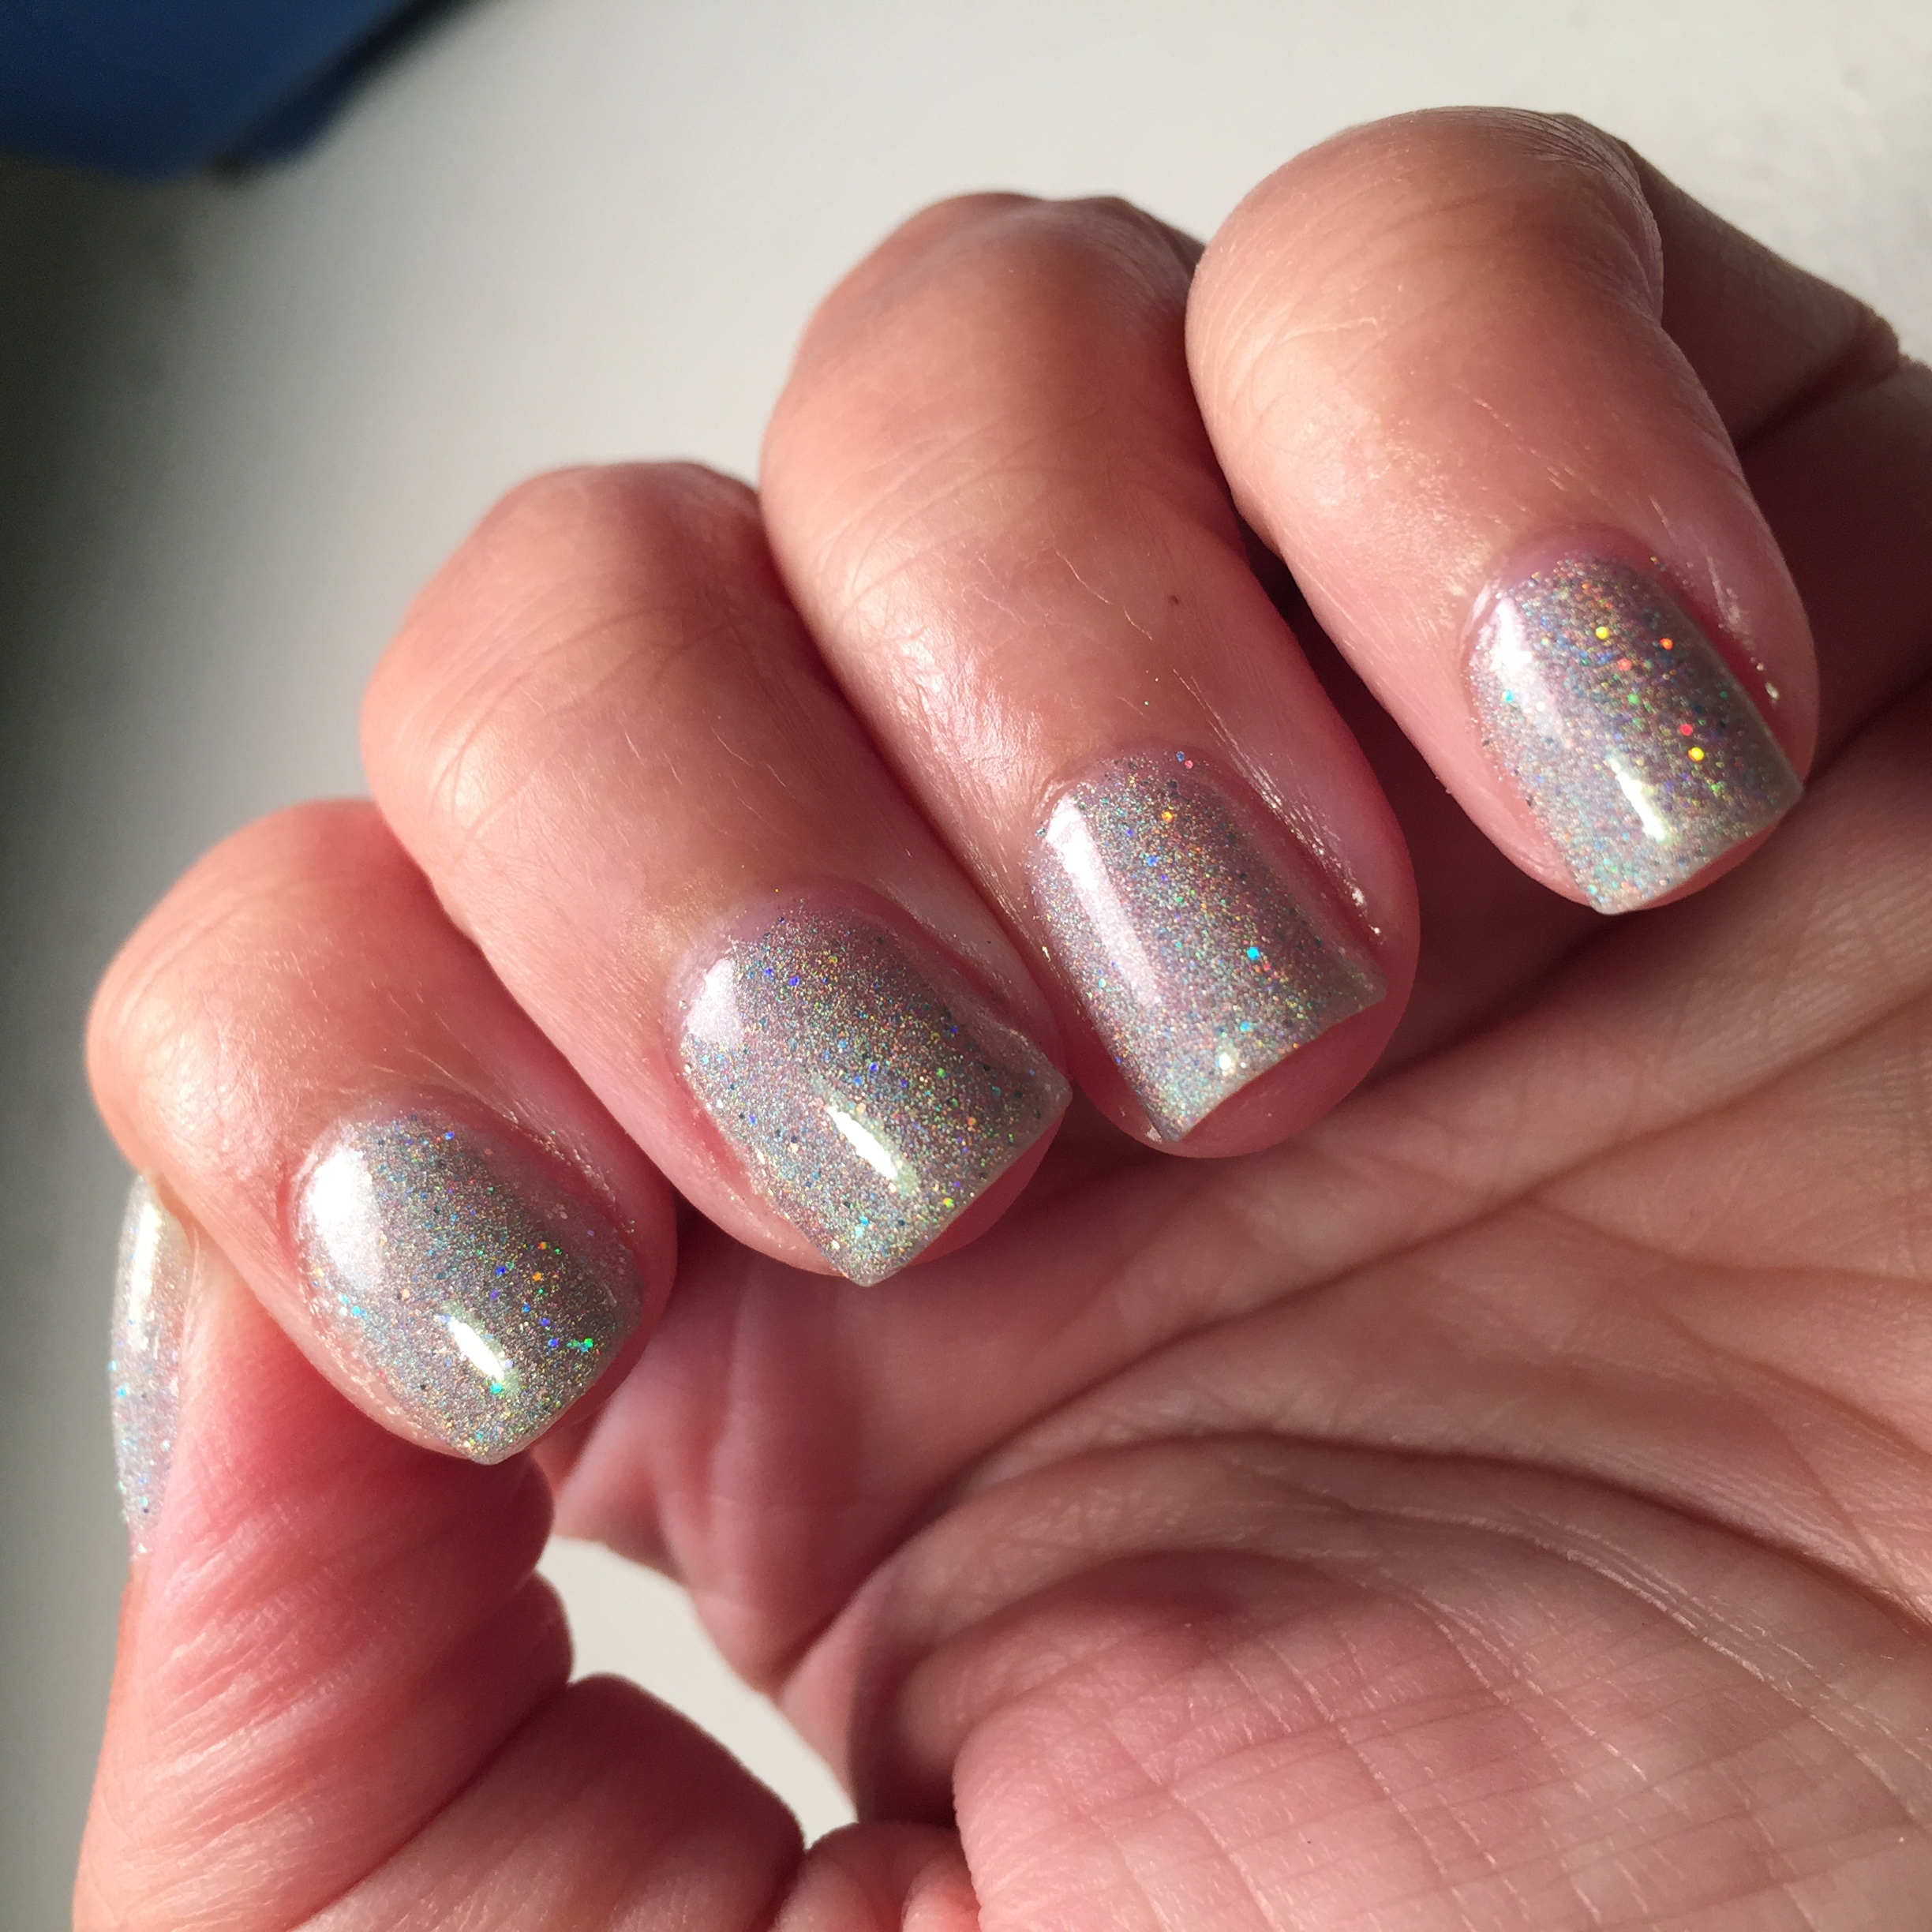 Beauty Tips for Women: Mermaid Mondays and Orly Mirrorball swatch ...